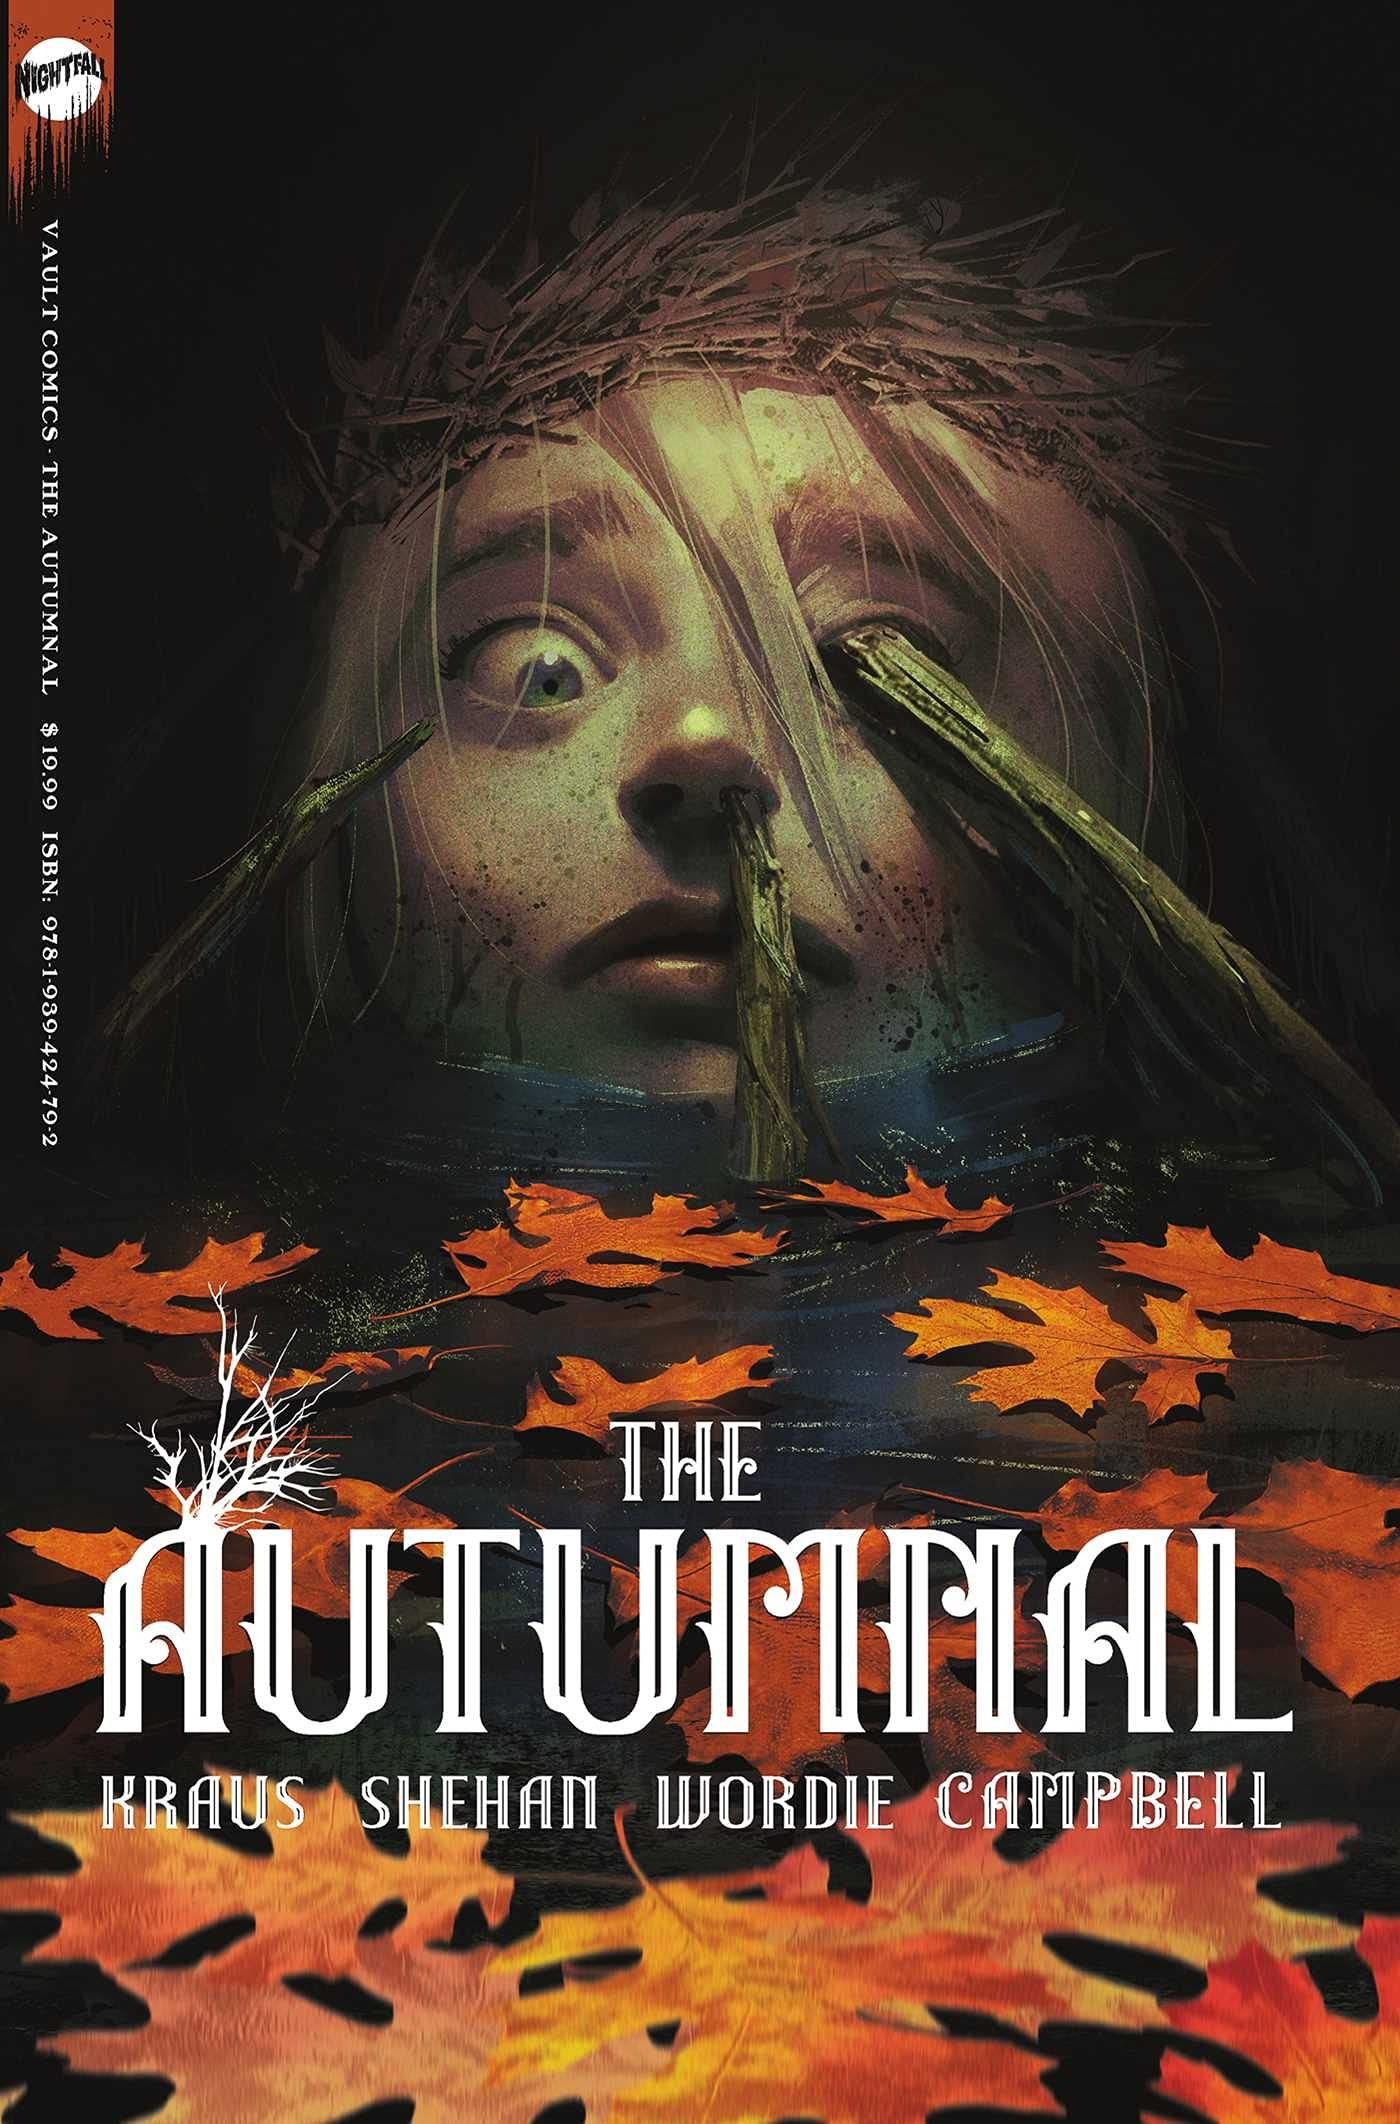 The Autumnal: The Complete Series by Daniel Kraus